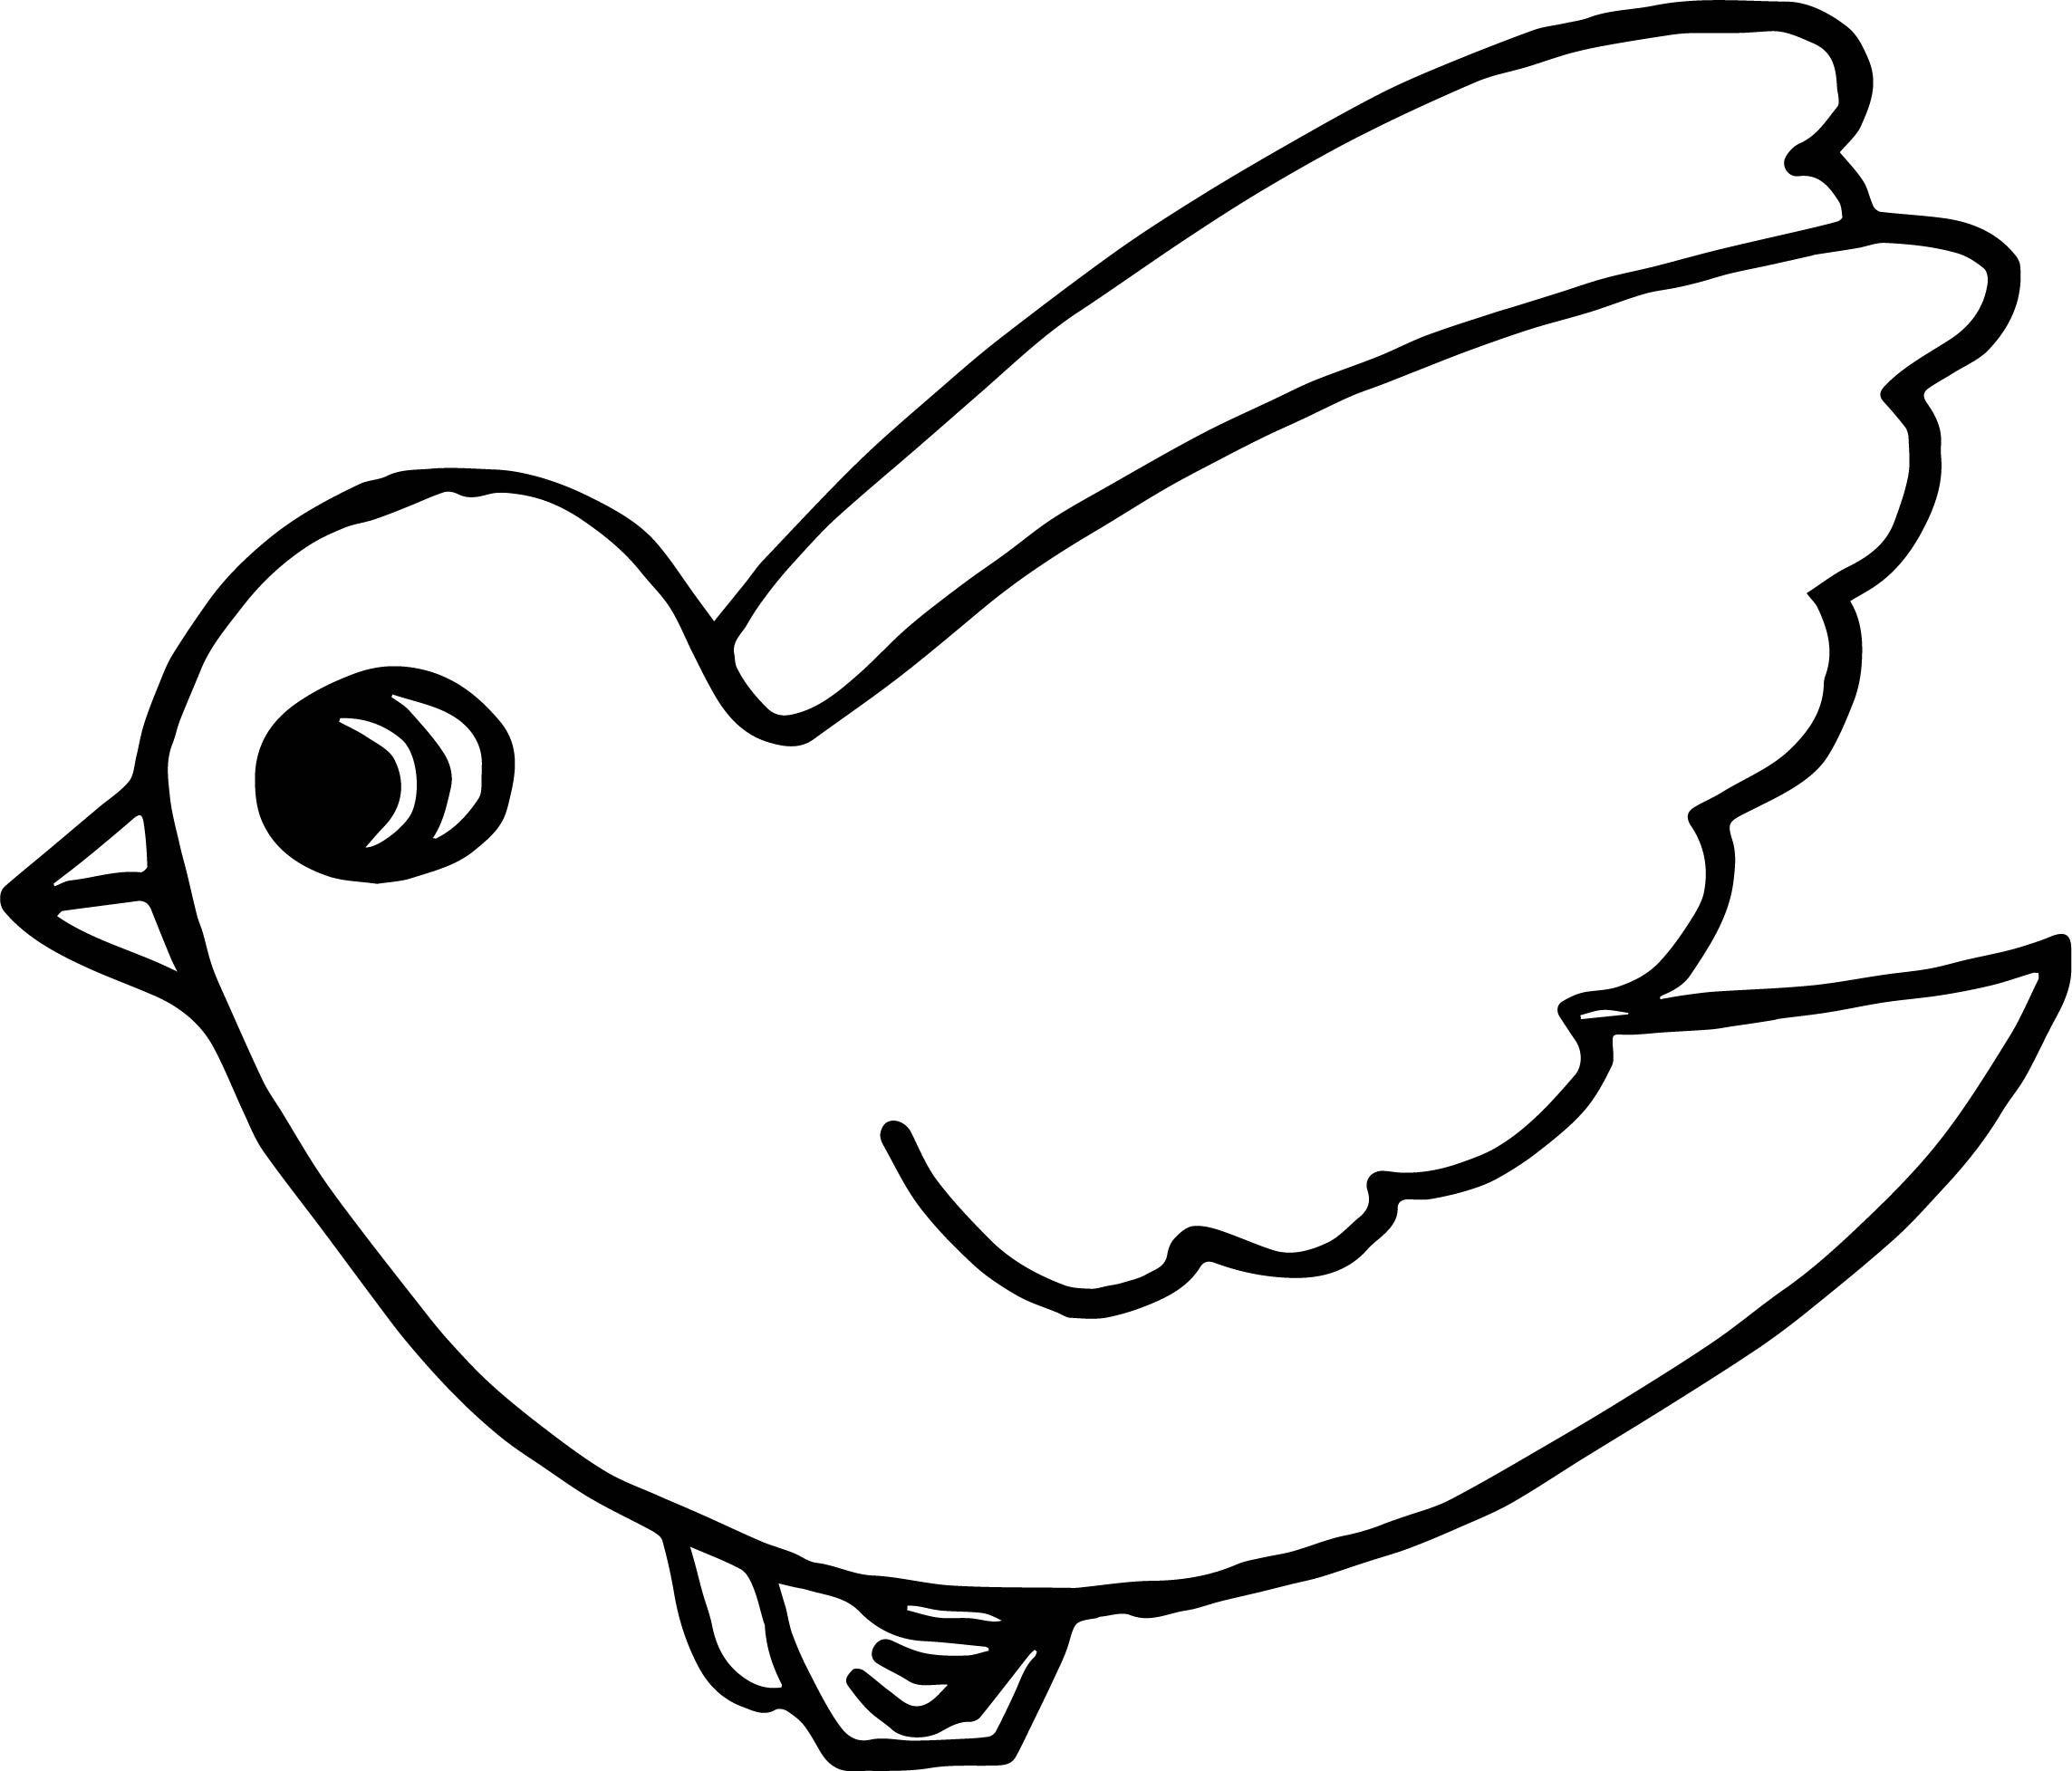 Cool Flying Bird Coloring Page Livros De Tecido Patchwork